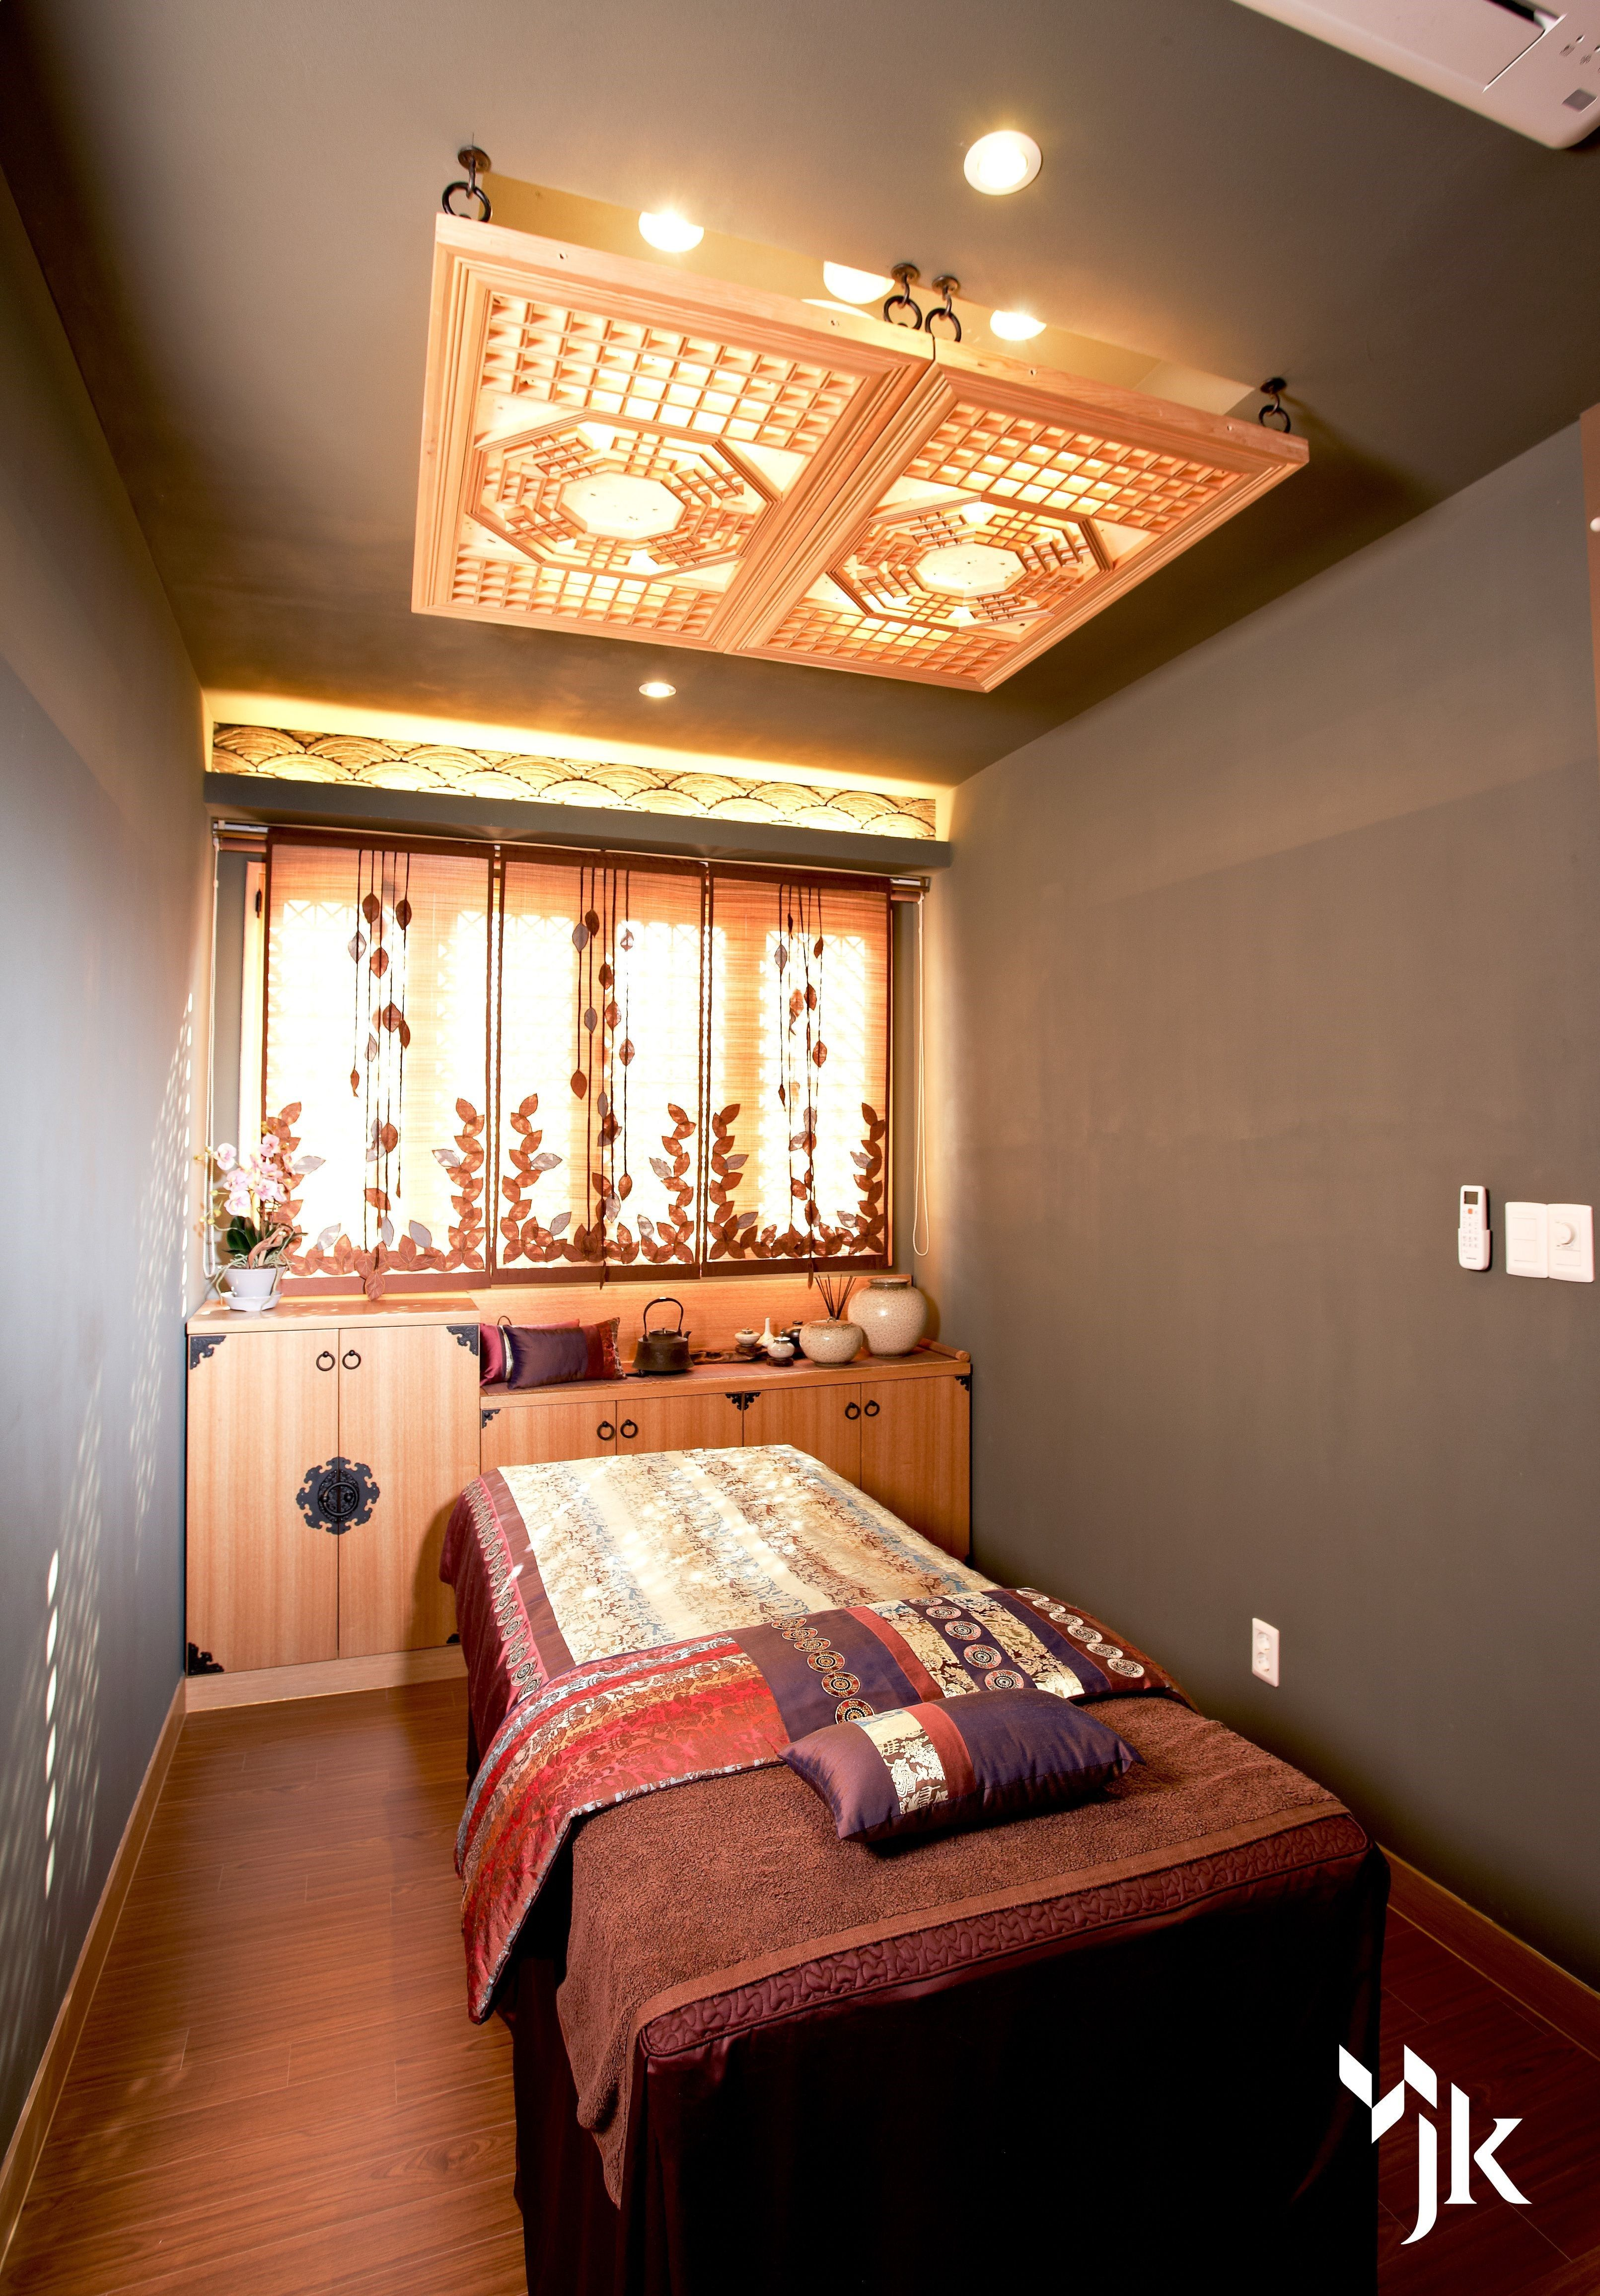 Jk Spa And Esthetic Is A Healing Space That Rejuvenates